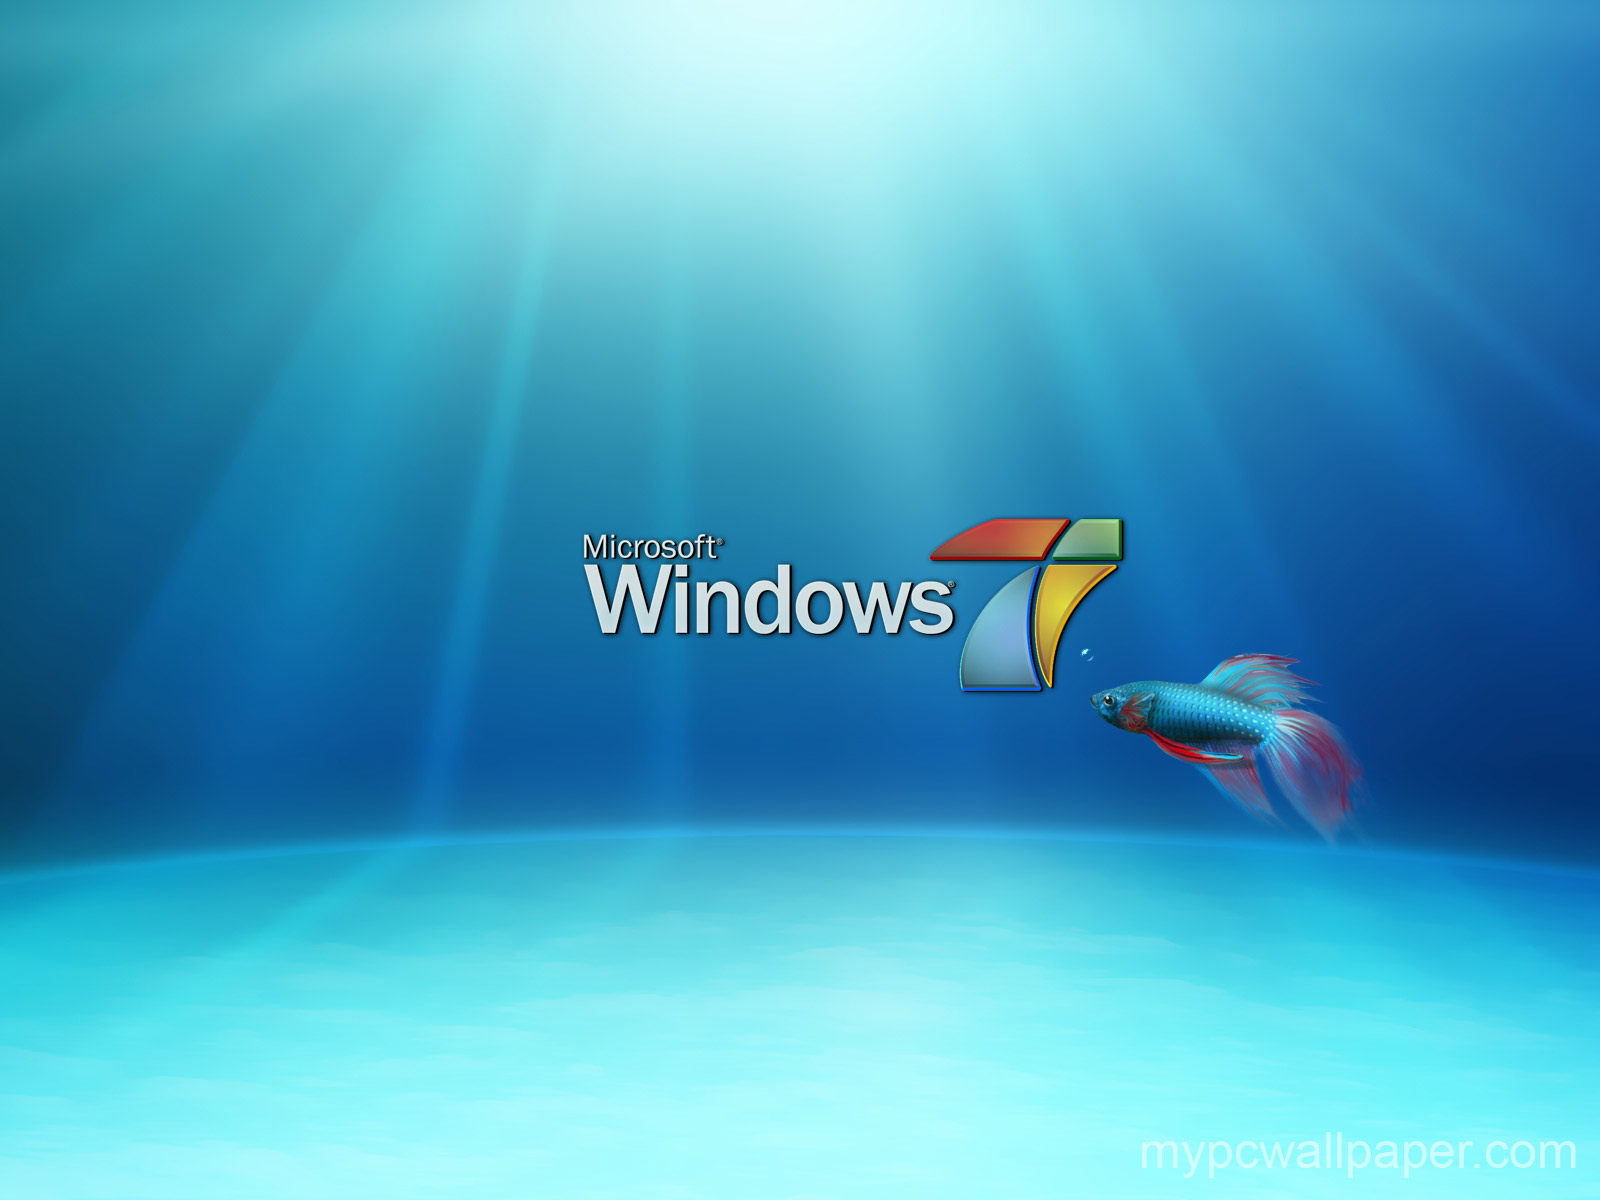 Windows7 new wallpaper fish1 Windows7 New Wallpaper 1600x1200